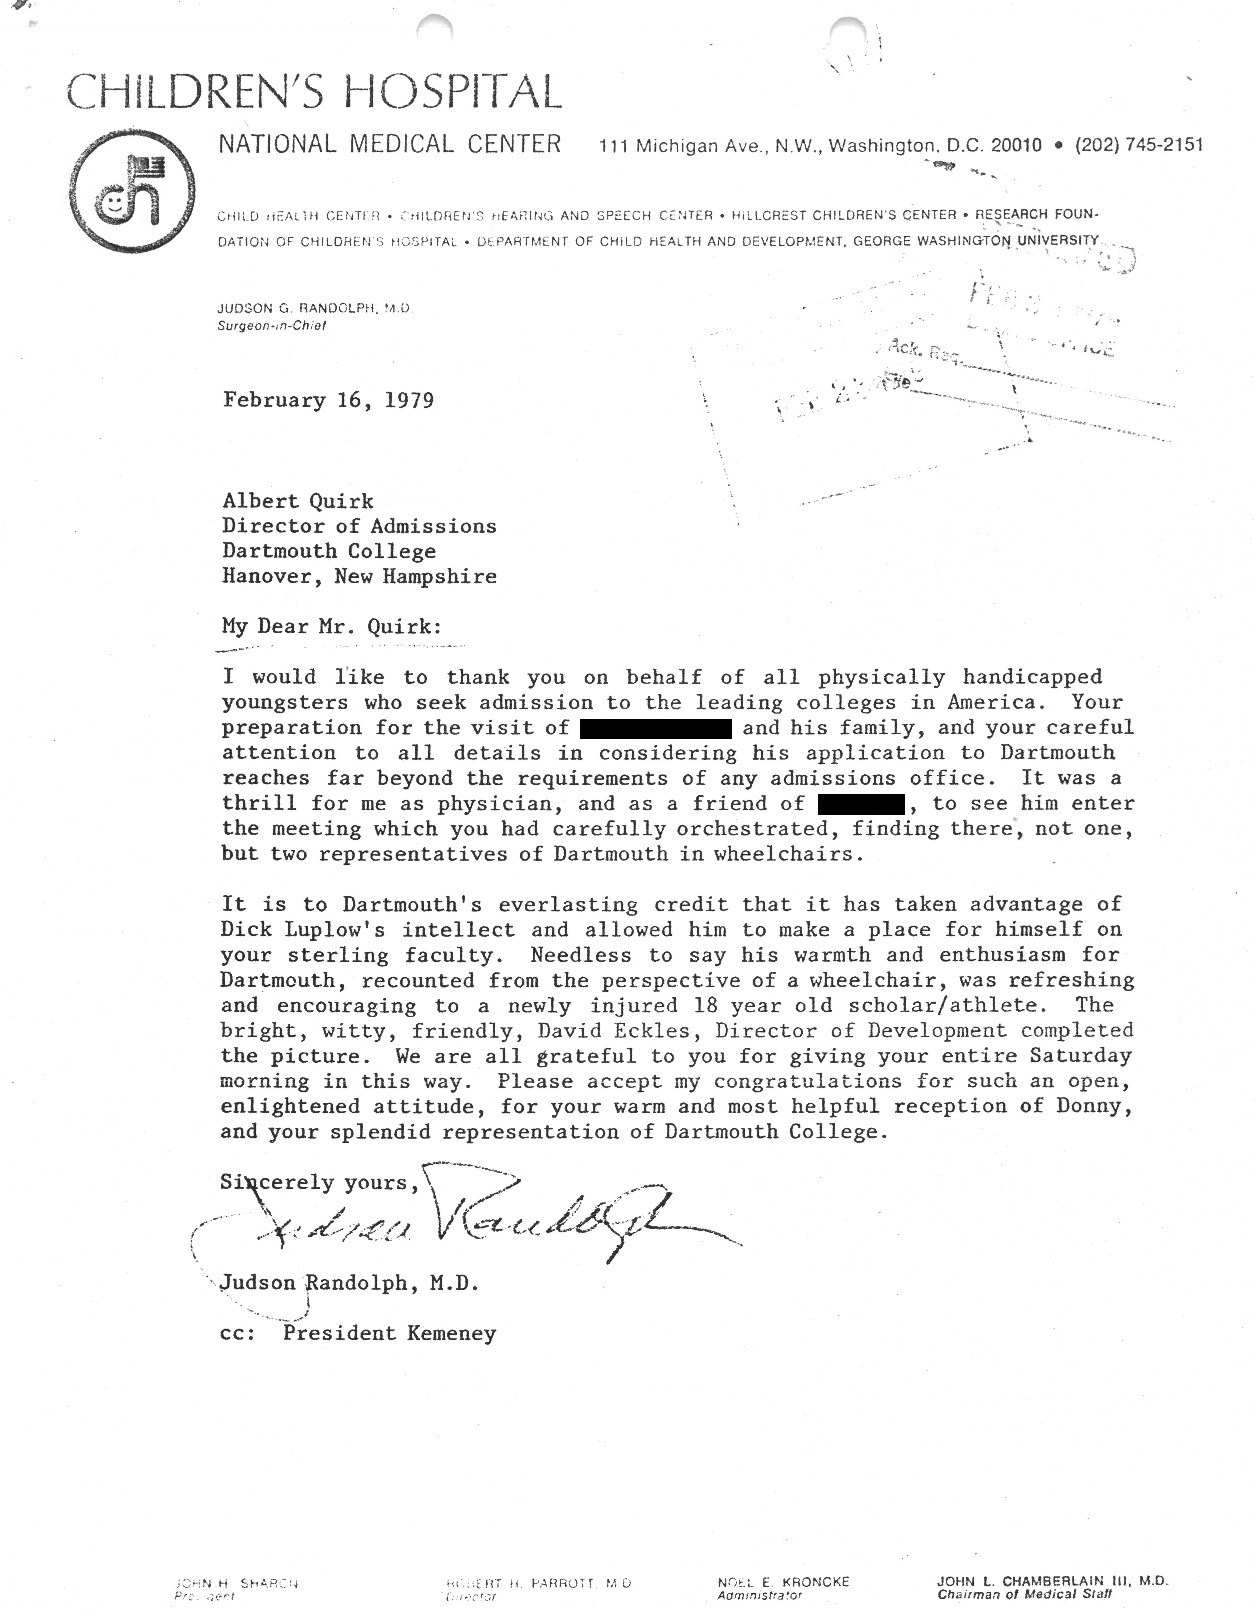 """A letter from the doctor of an admitted student to the Class of 1983 expressing delight """"to see him enter the meeting which [Dartmouth's Director of Admissions] had carefully orchestrated, finding there, not one, but two representatives of Dartmouth in wheelchairs."""" The Dartmouth representatives were Richard Luplow and David Eckels."""